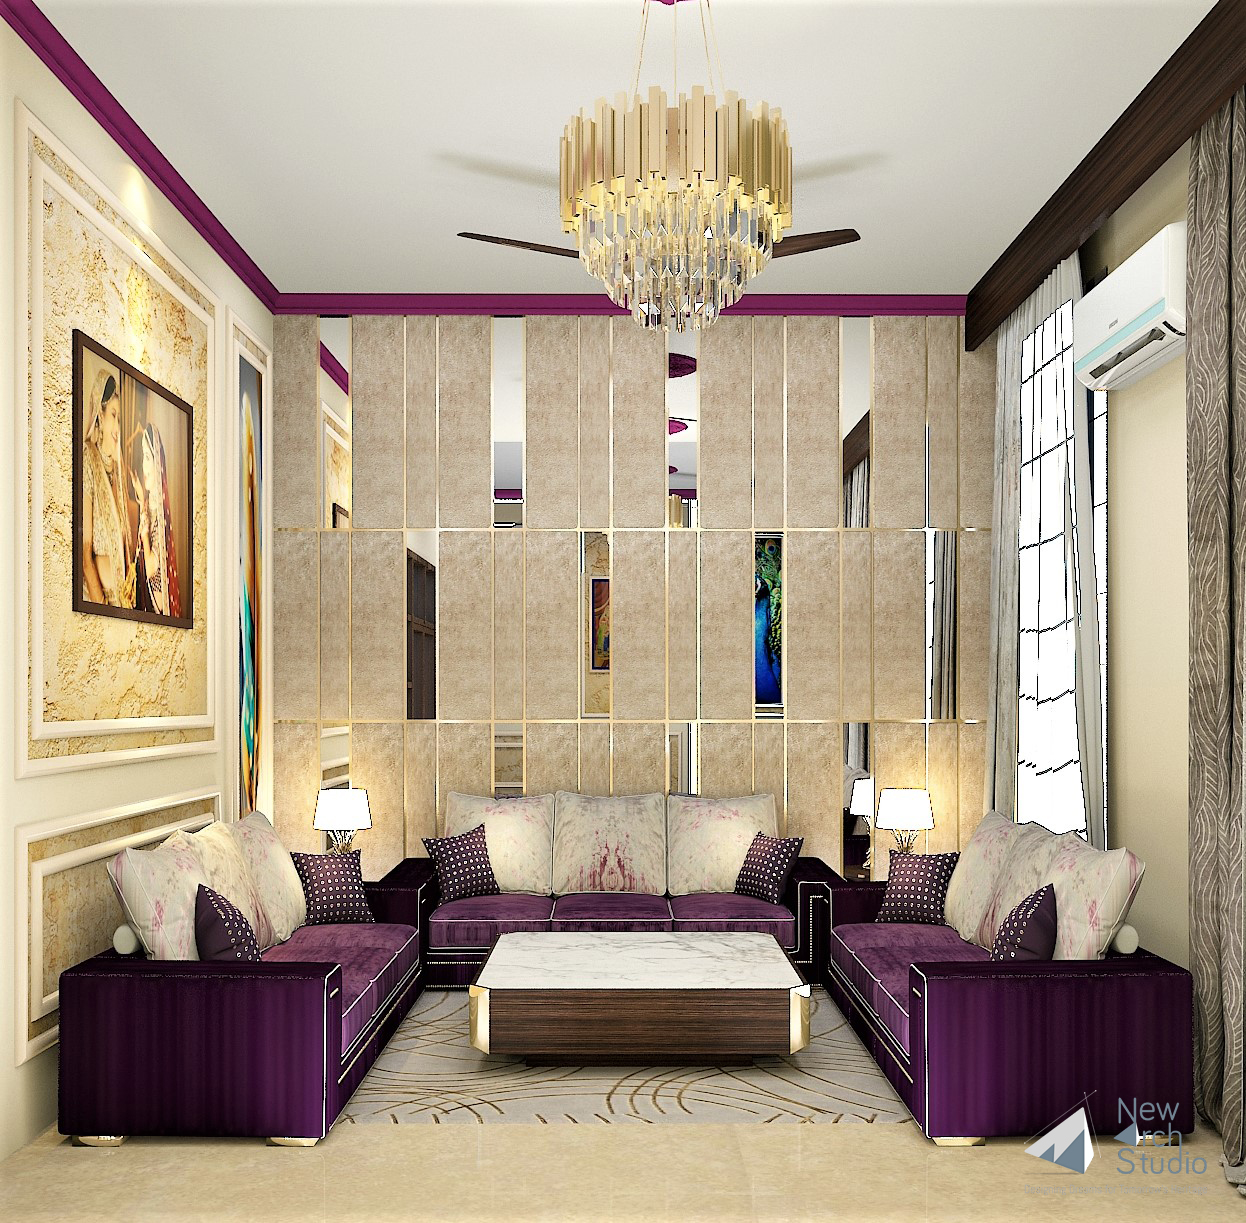 Residential Interior Renovation, Noida Sec-41 Done By New Arch Studio